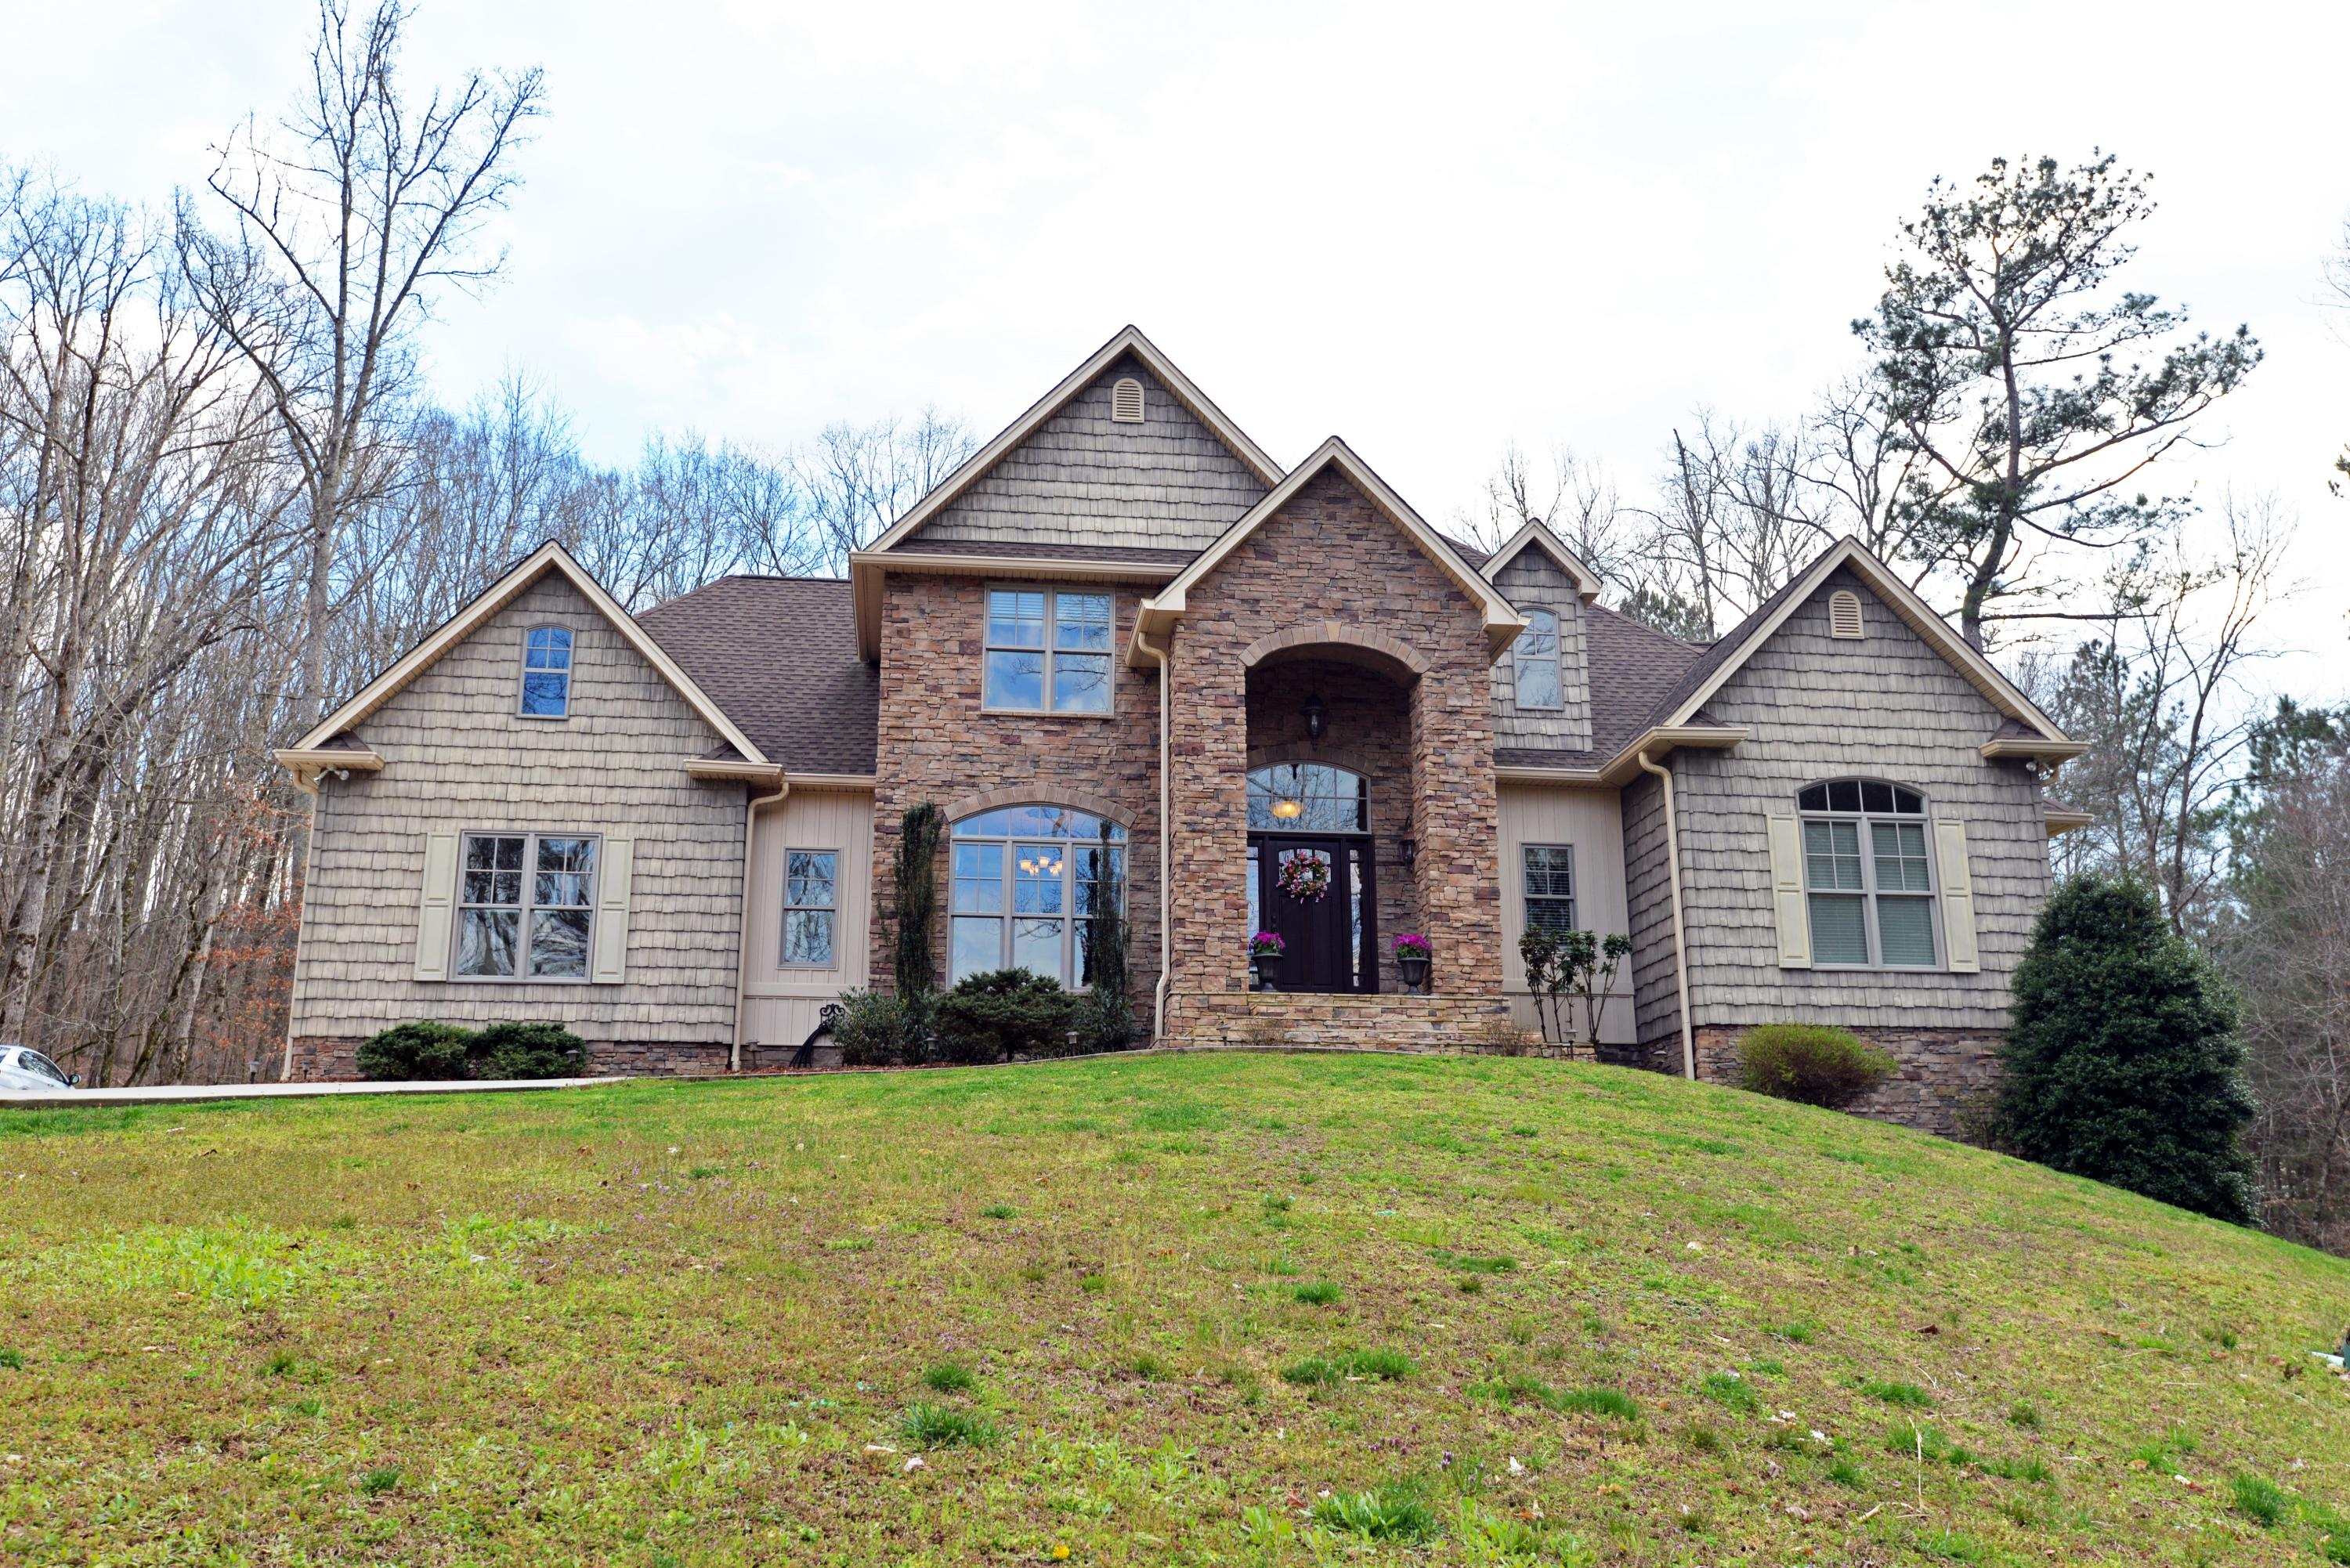 1740 Nw Rabbit Valley Rd, Cleveland, TN 37312